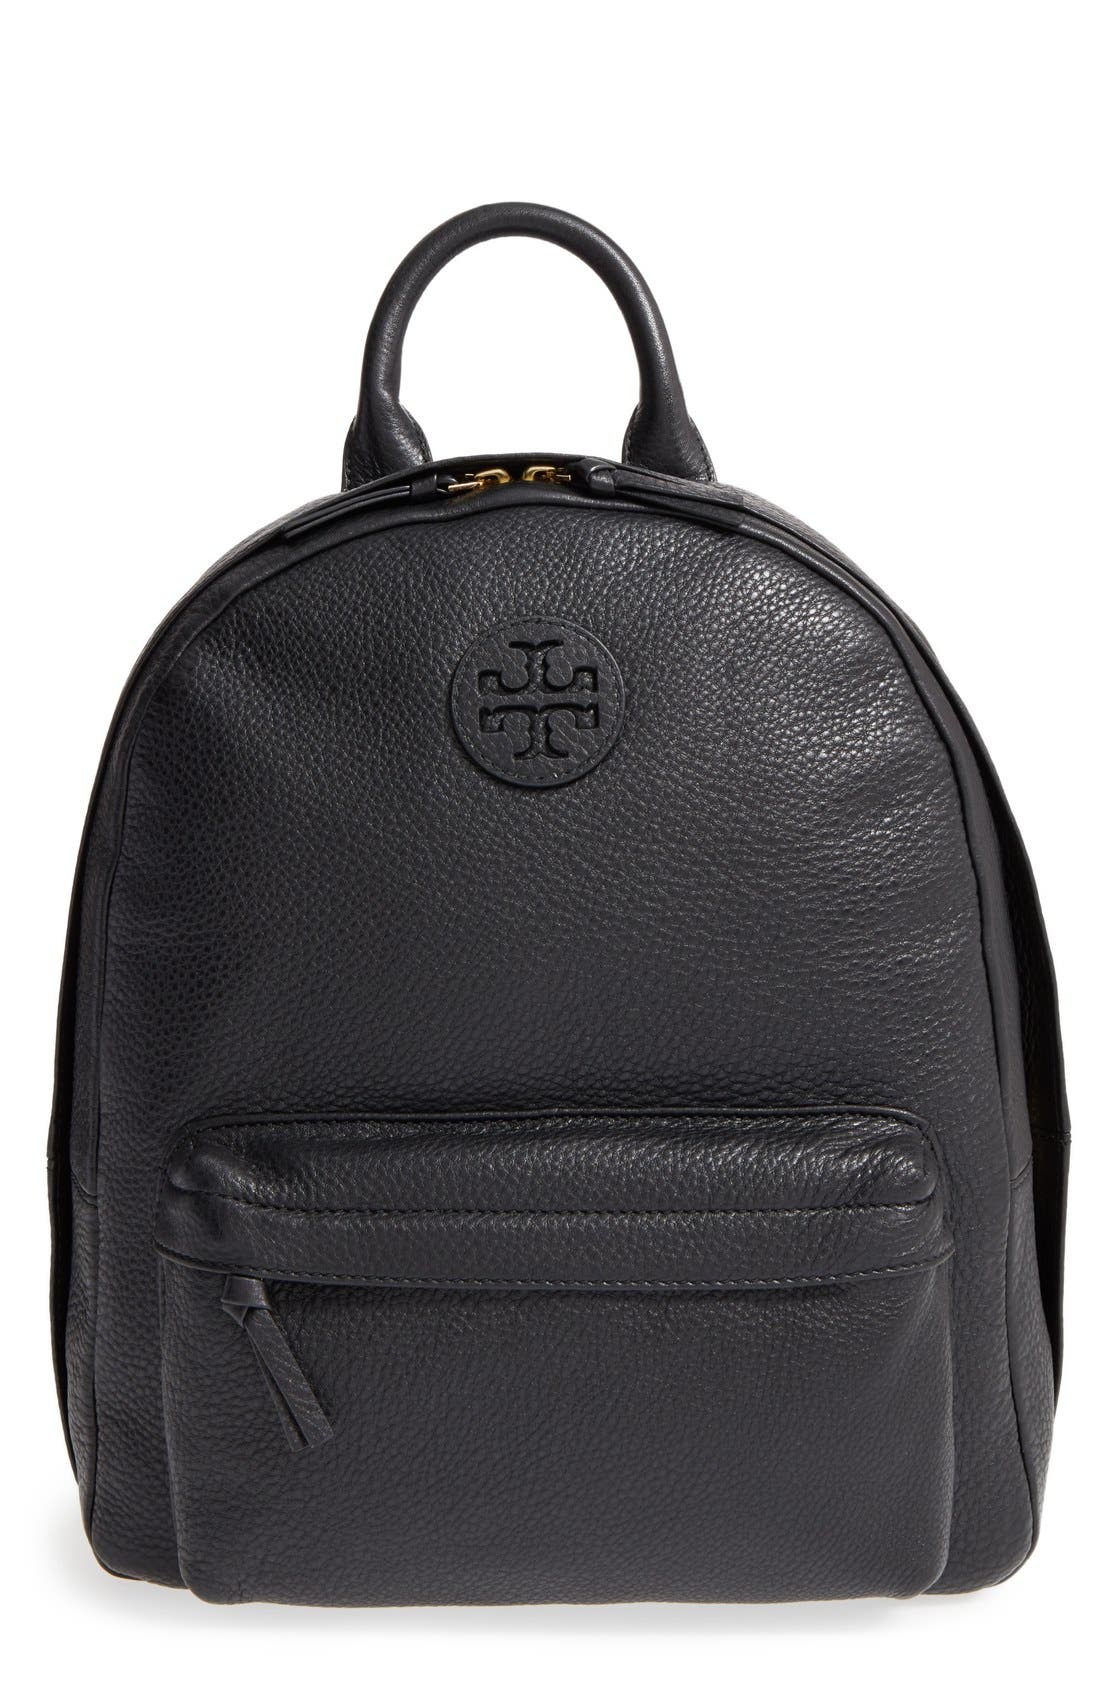 Alternate Image 1 Selected - Tory Burch Pebbled Leather Backpack